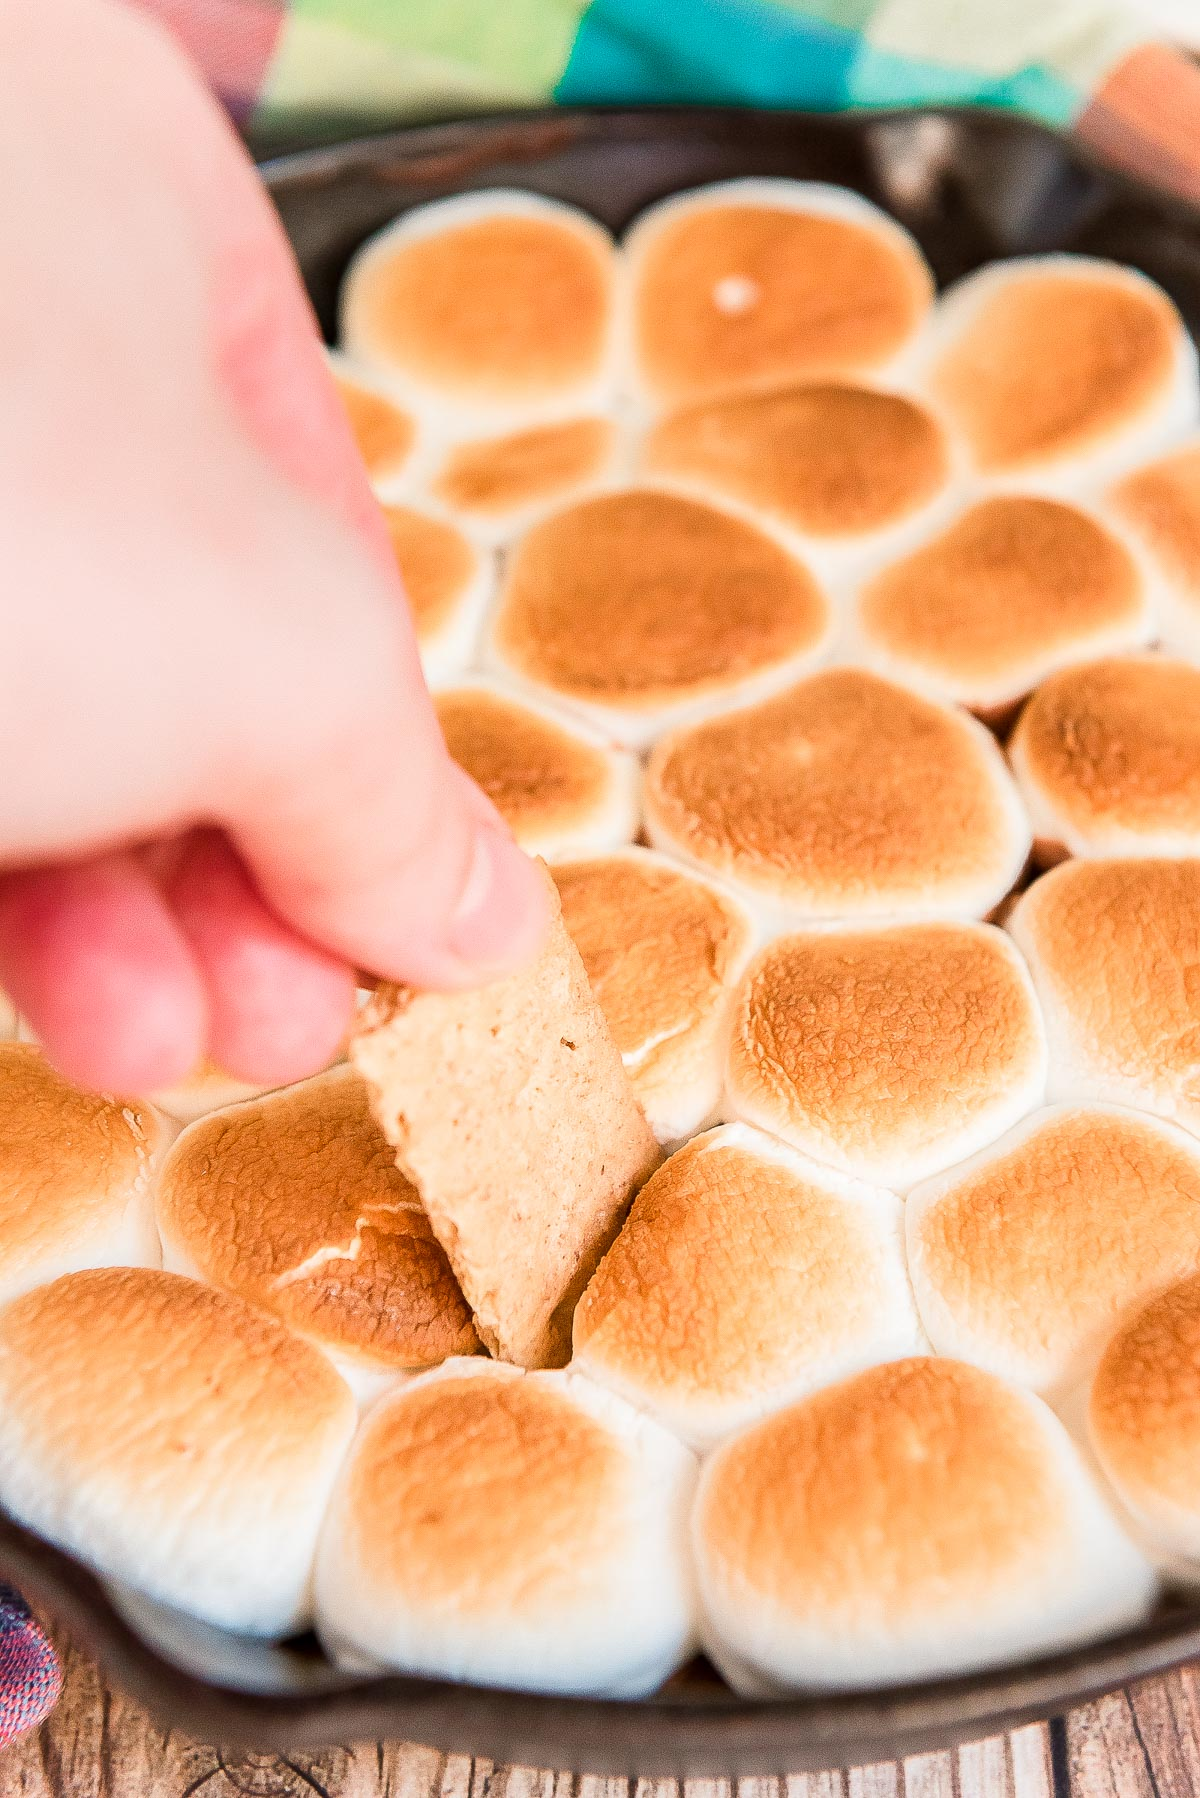 Woman's hand scooping a graham cracker piece into a cast iron skillet filled with toasted marshmallows.